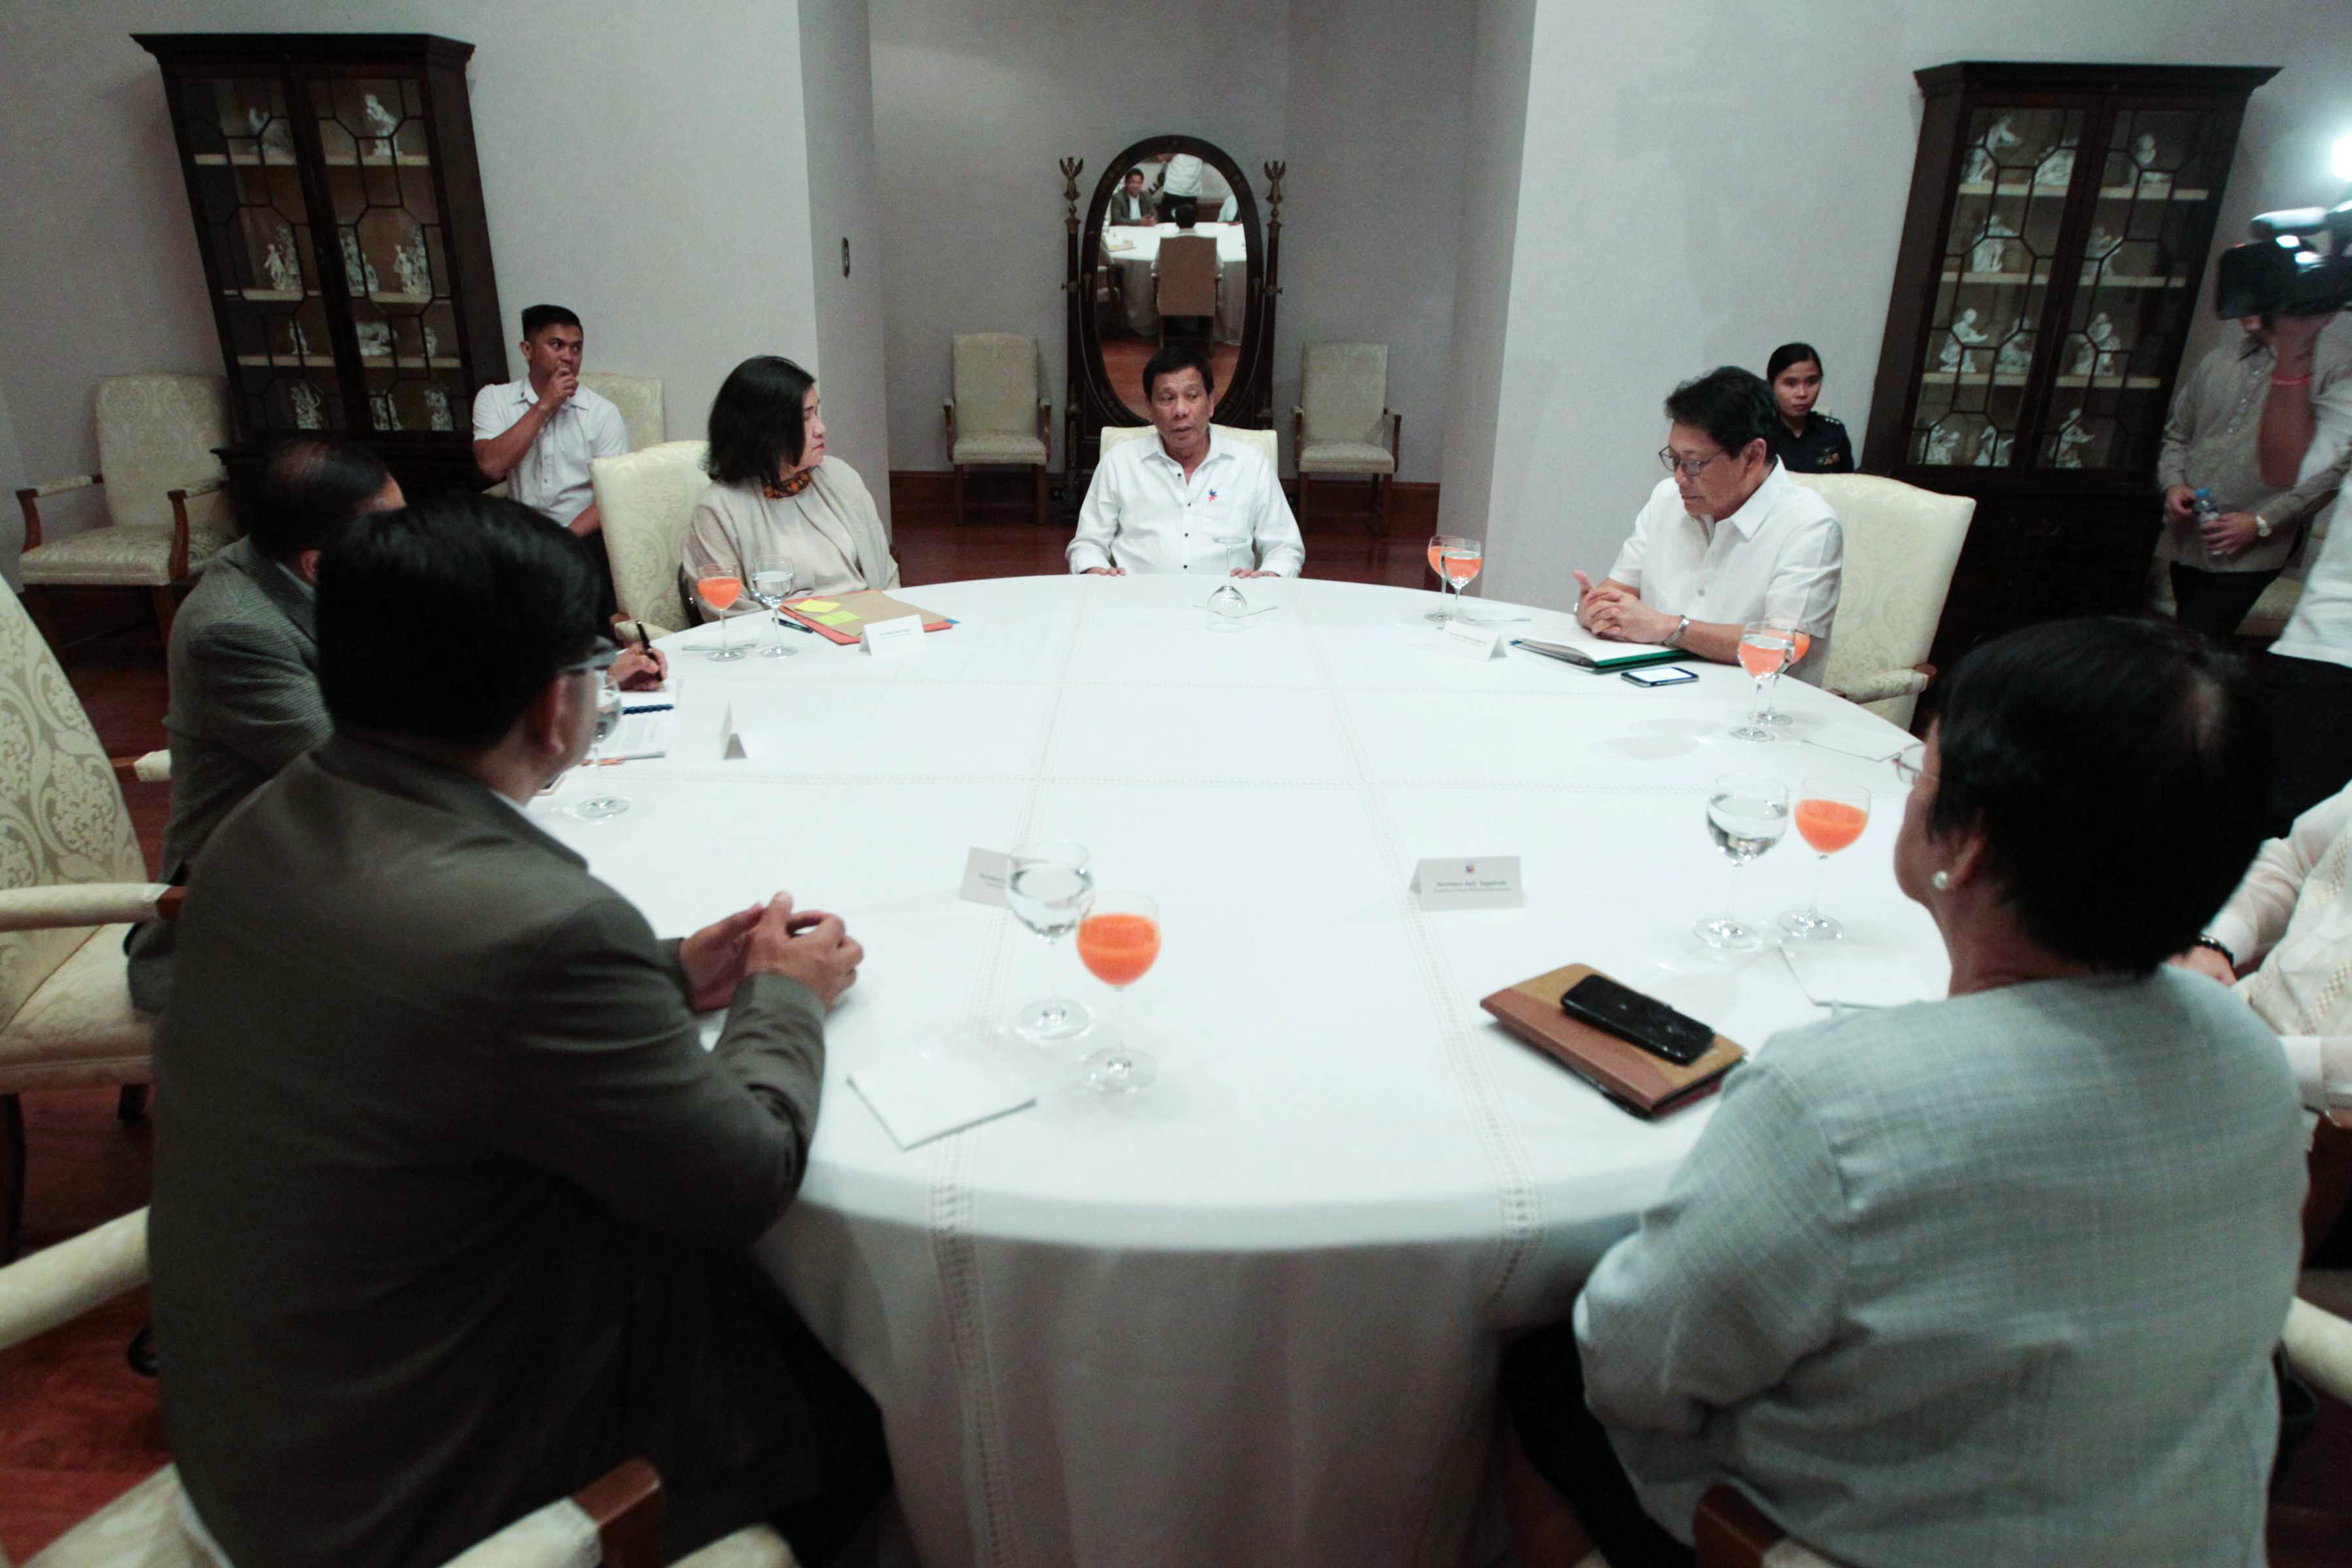 DINNER WITH THE LEFT. President Rodrigo Duterte meets with leftist members of his Cabinet on February 20, 2017, in Malacau00f1ang. Beside him is Anti-Poverty Commissioner Liza Maza. Photo courtesy of Malacau00f1ang